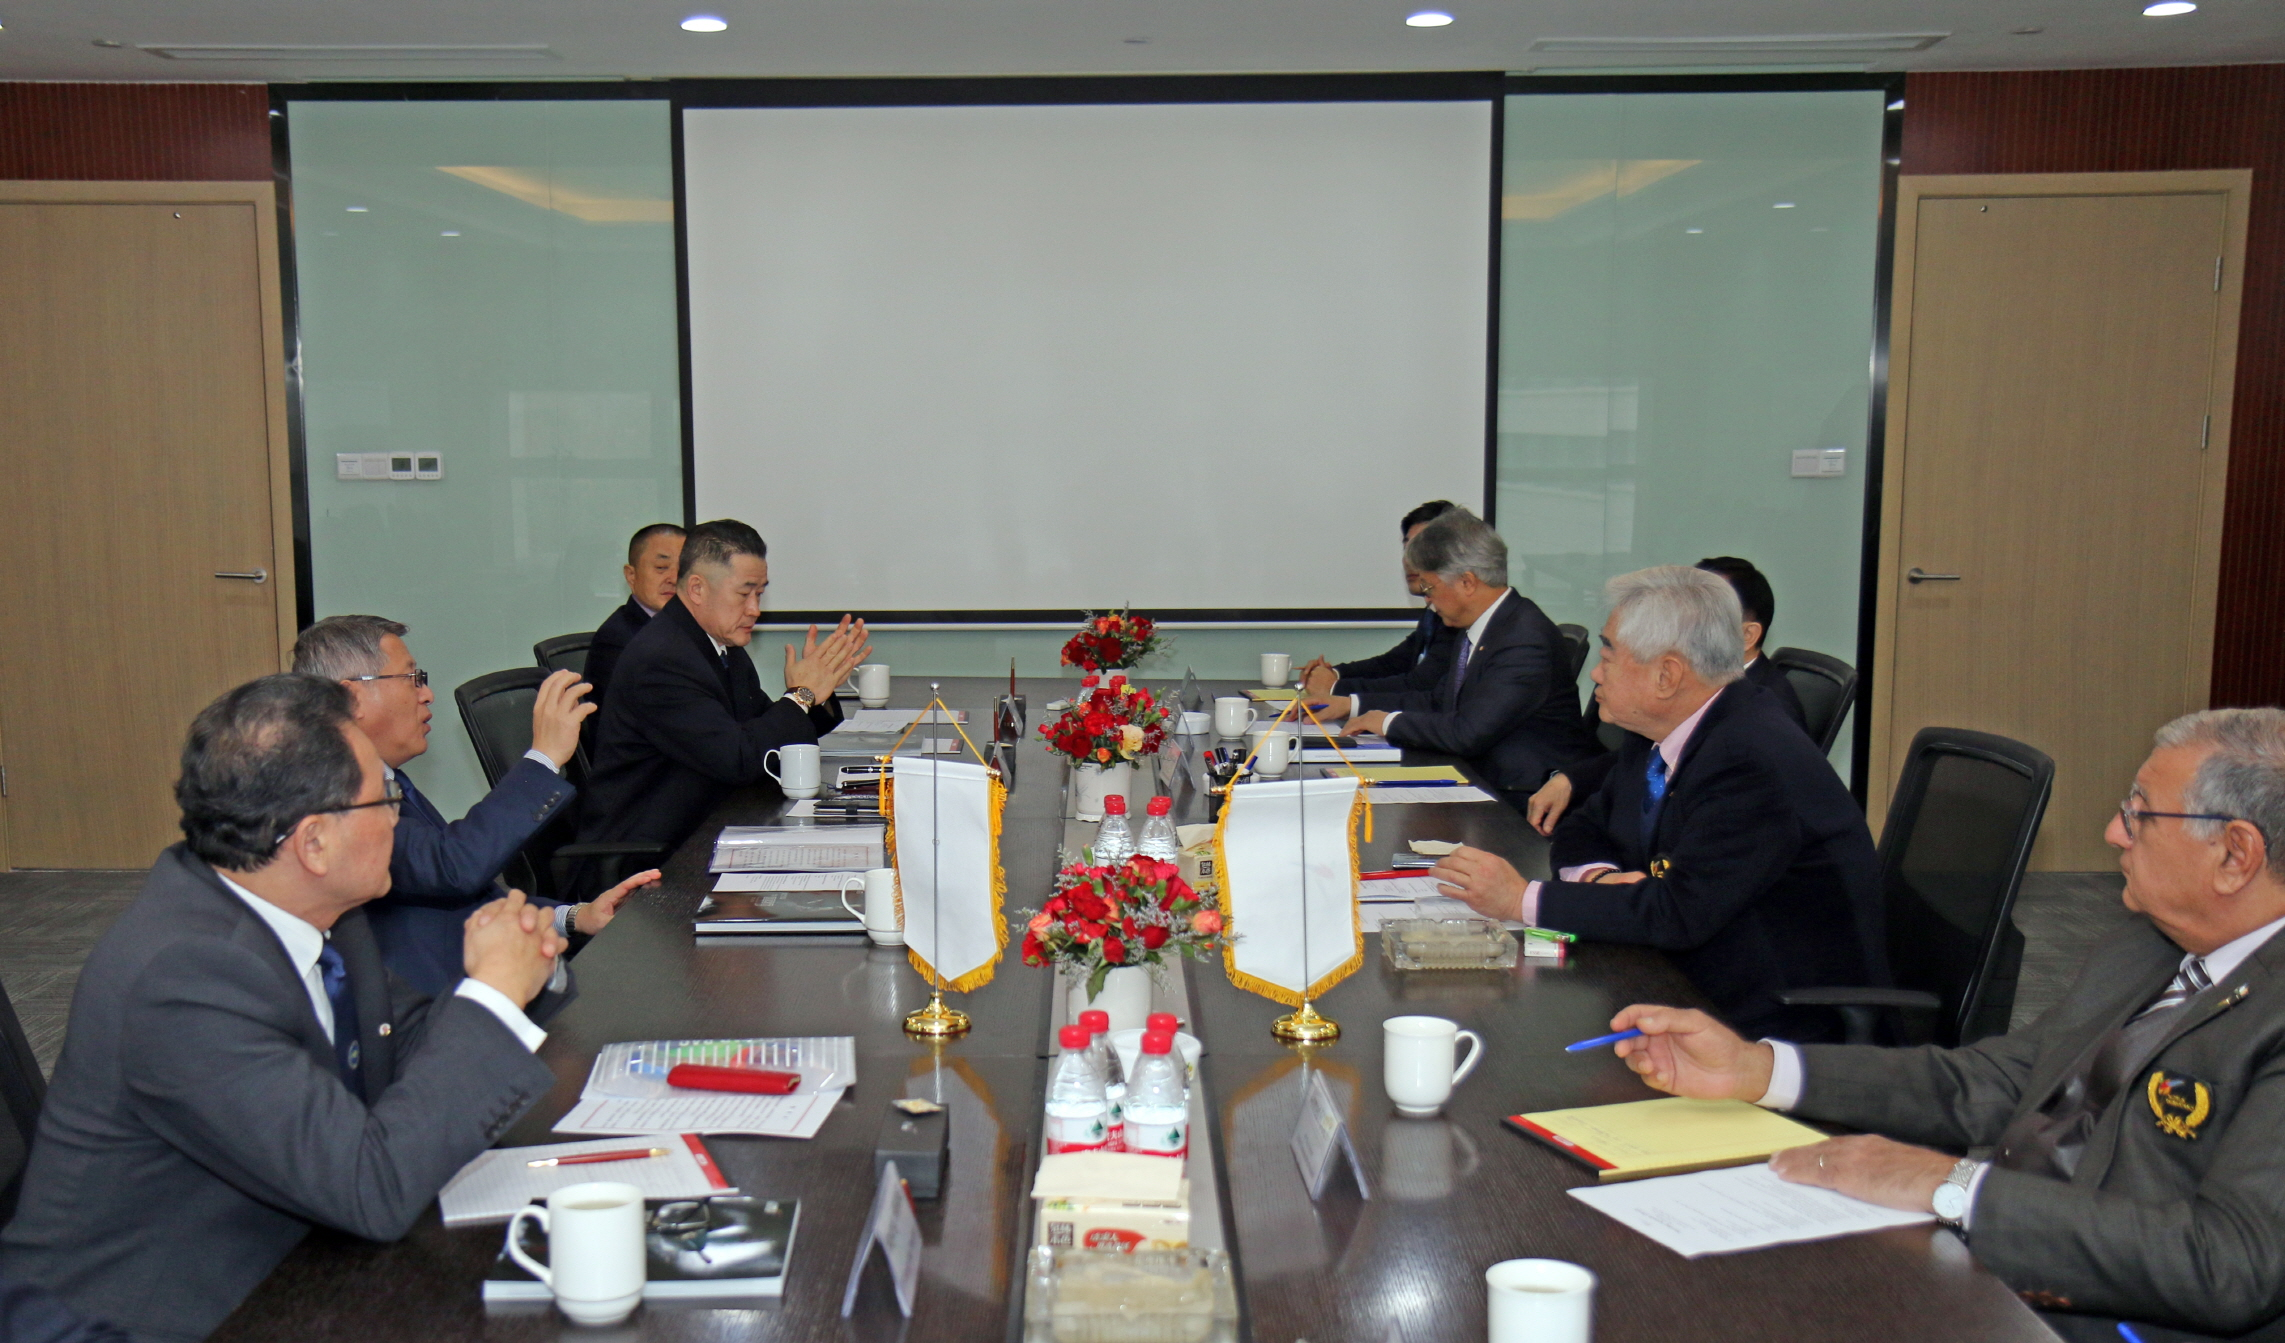 WT President Chungwon Choue (right) and ITF President Yong Son Ri (left) during WT-ITF meeting at Wuxi,China